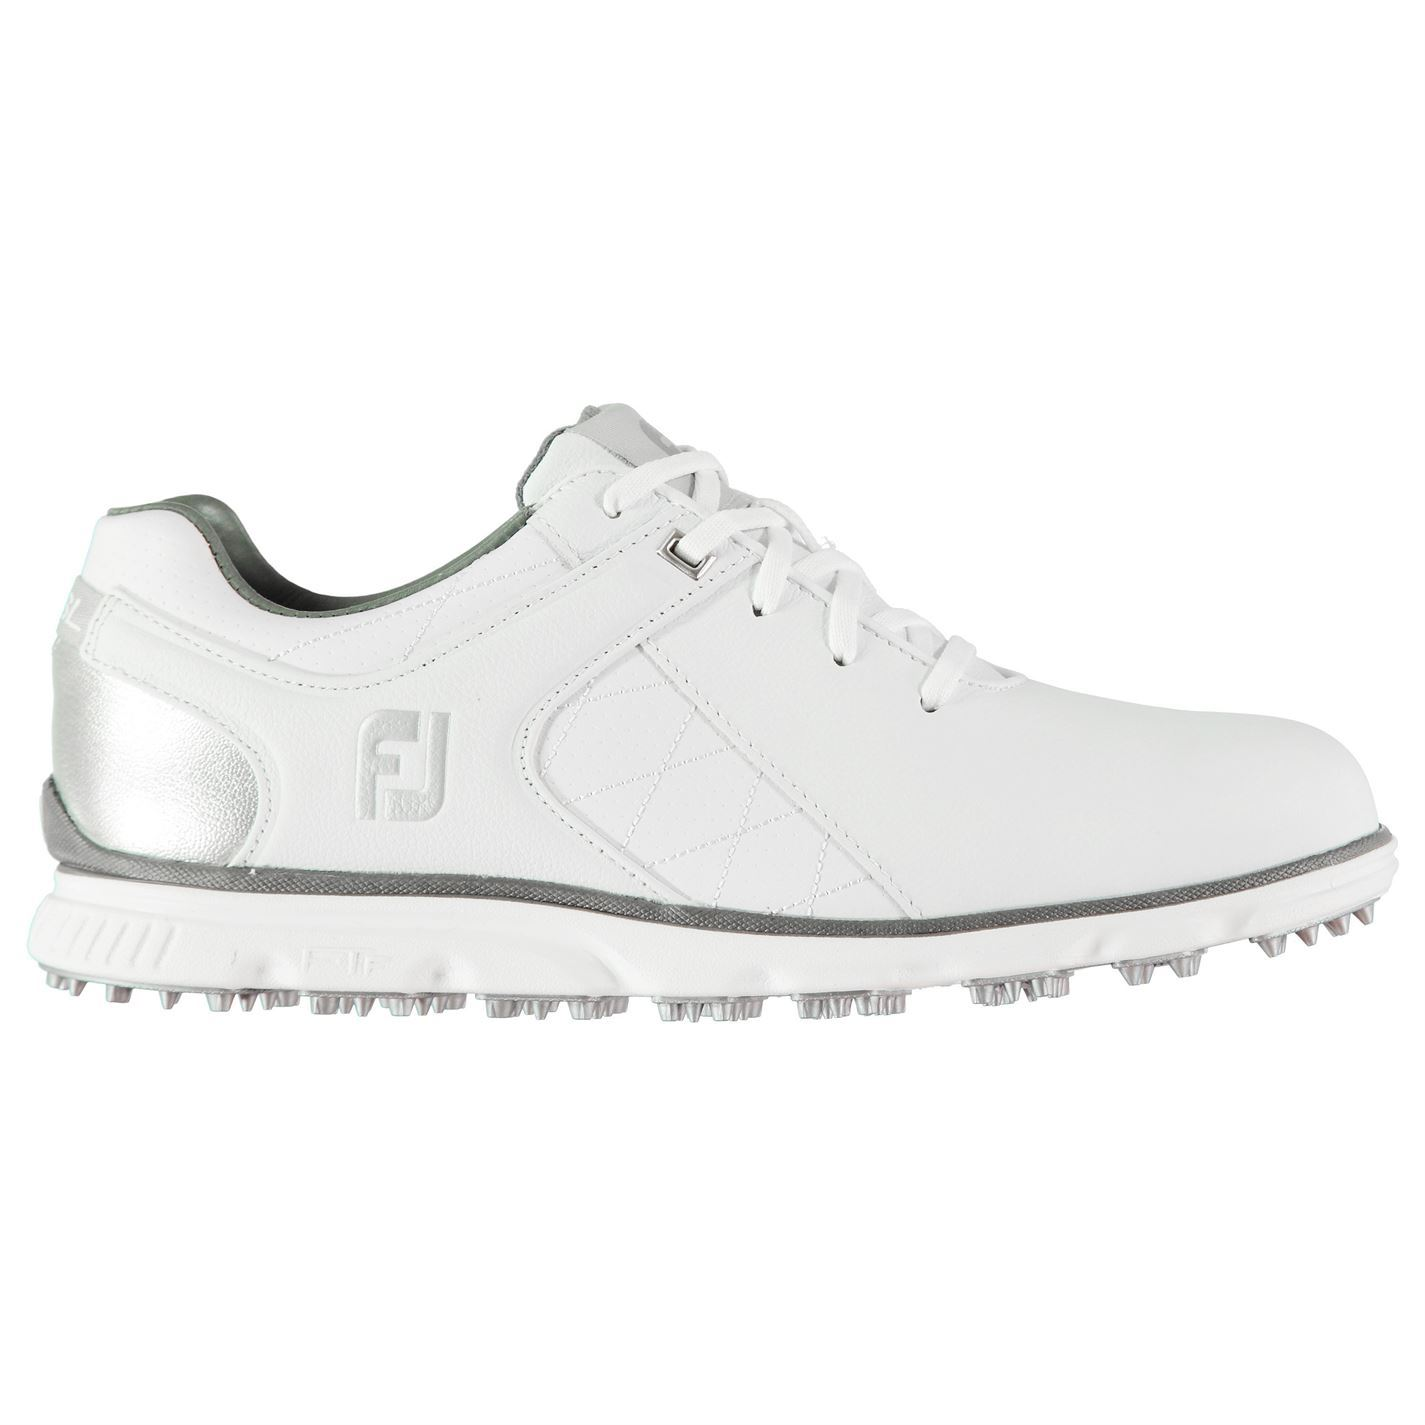 b66f223ca943c Details about Footjoy Pro SL Golf Shoes Mens Spikeless Footwear